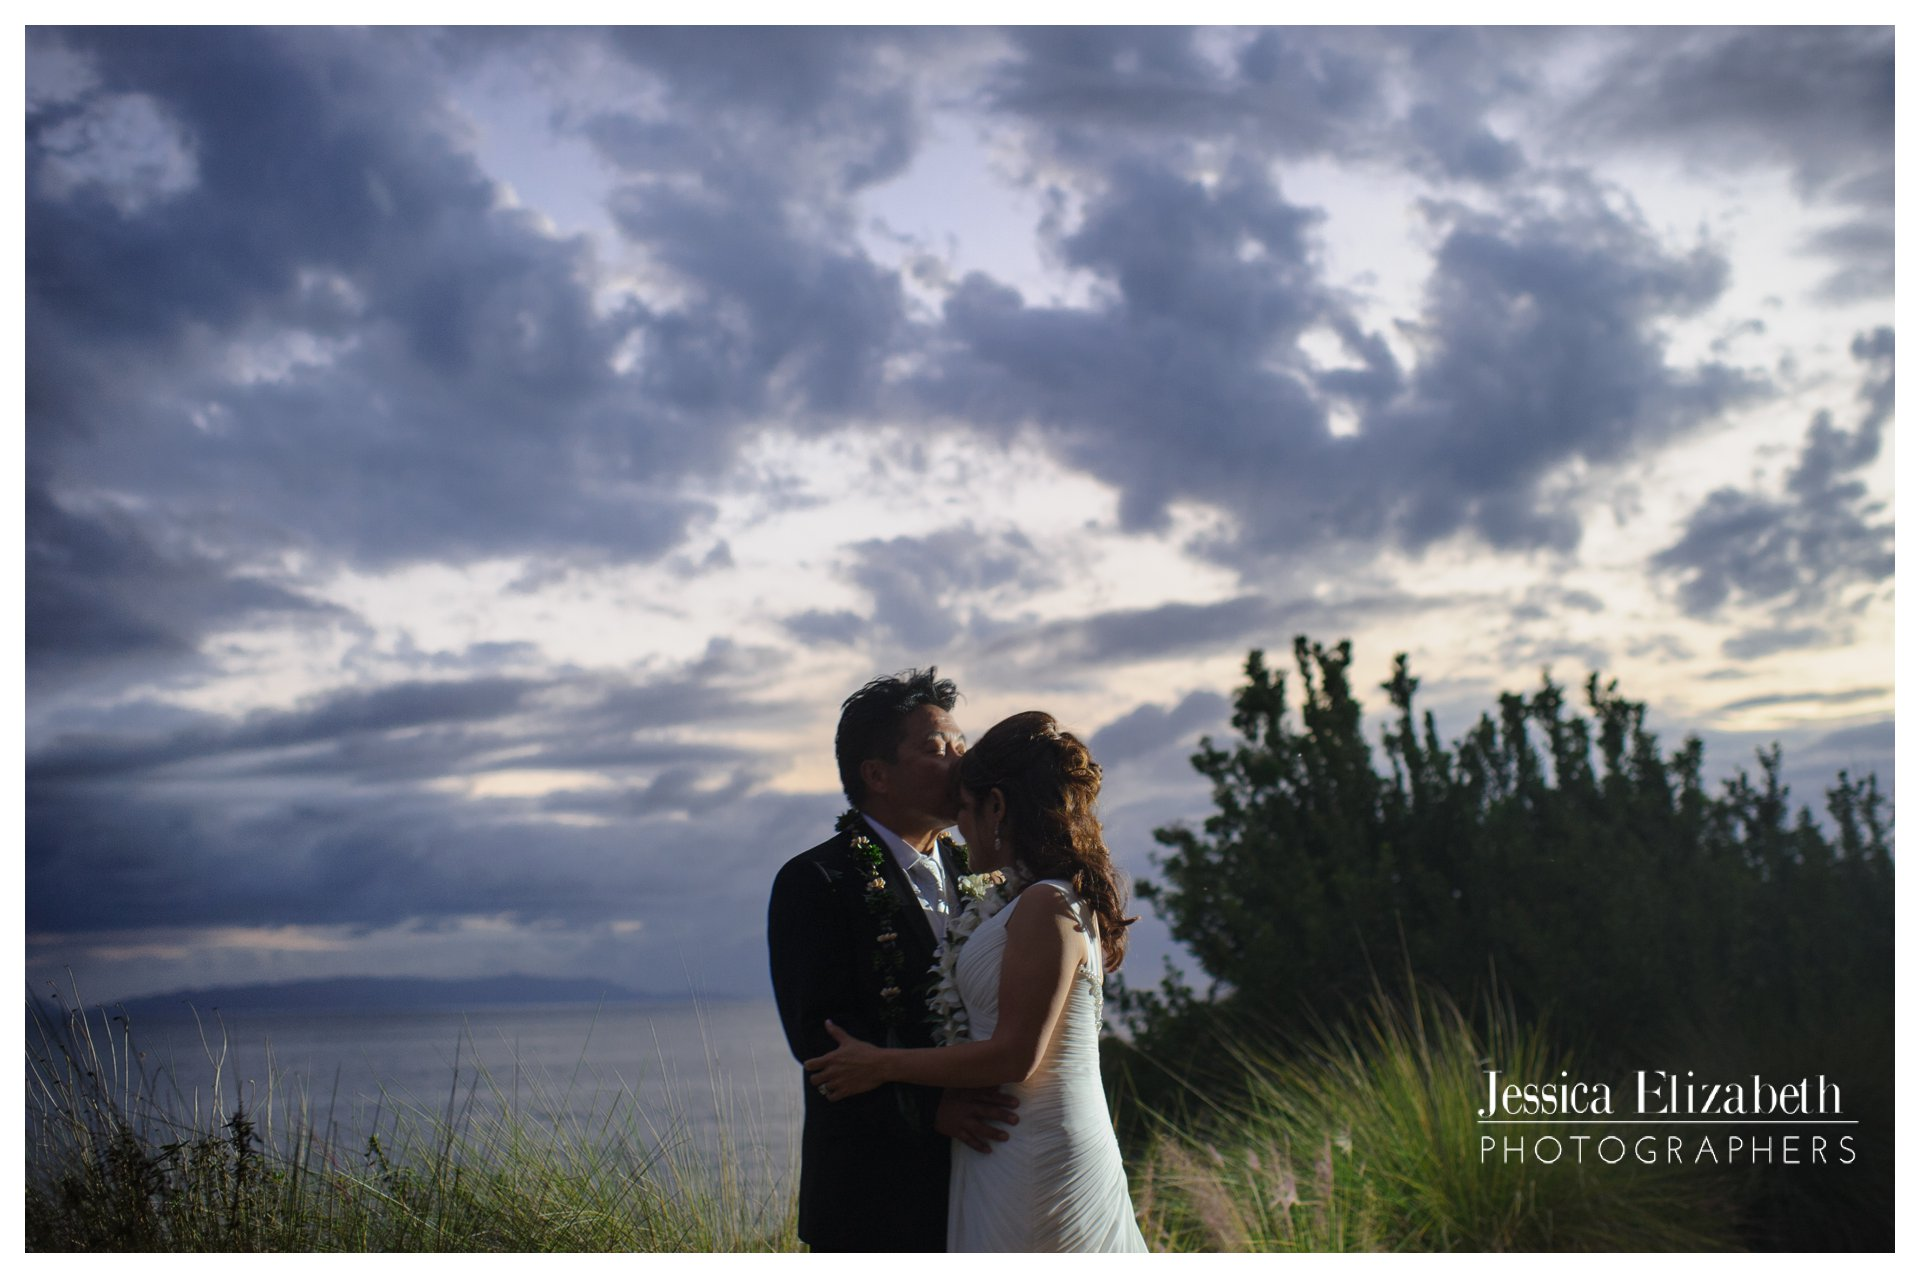 41-Terranea-Palos-Verdes-Wedding-Photography-by-Jessica-Elizabeth-w.jpg